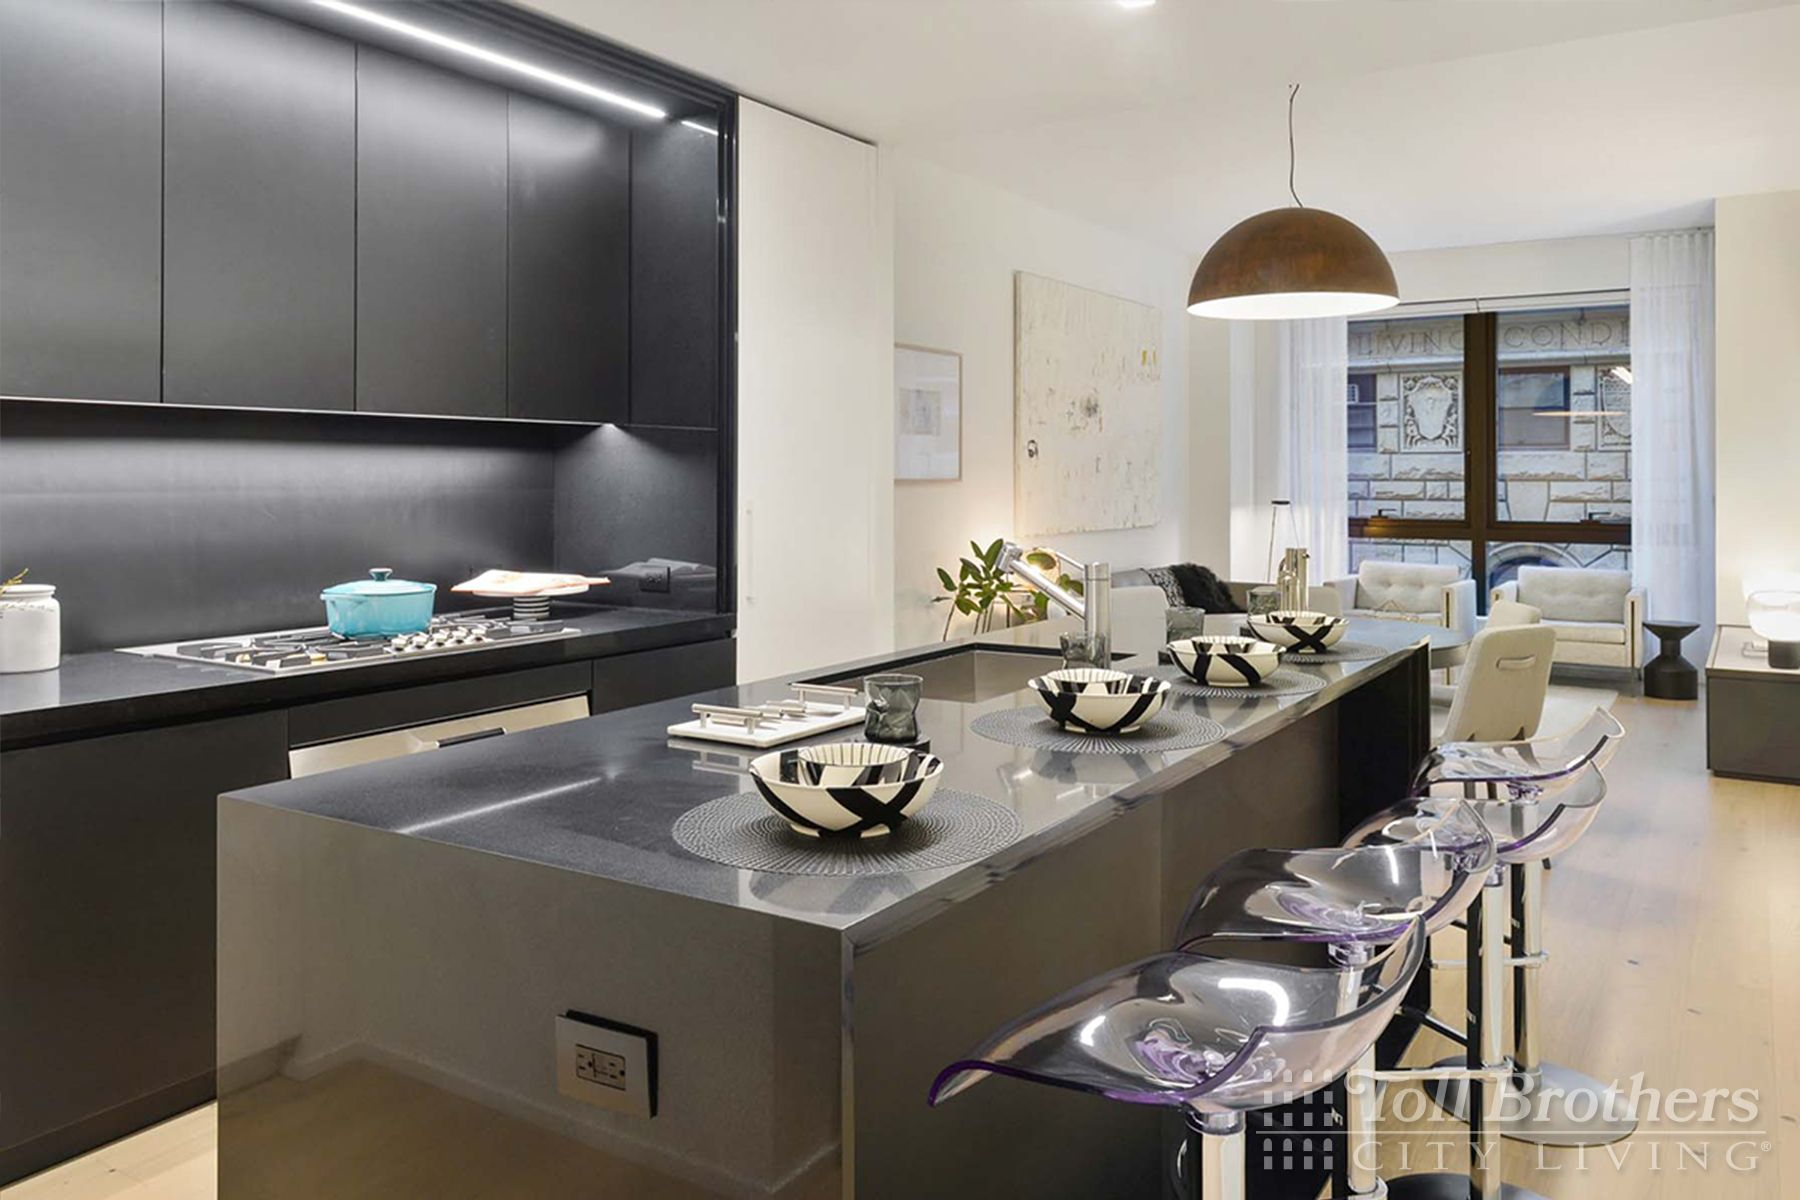 Kitchen featured in the S201 By Toll Brothers in New York, NY